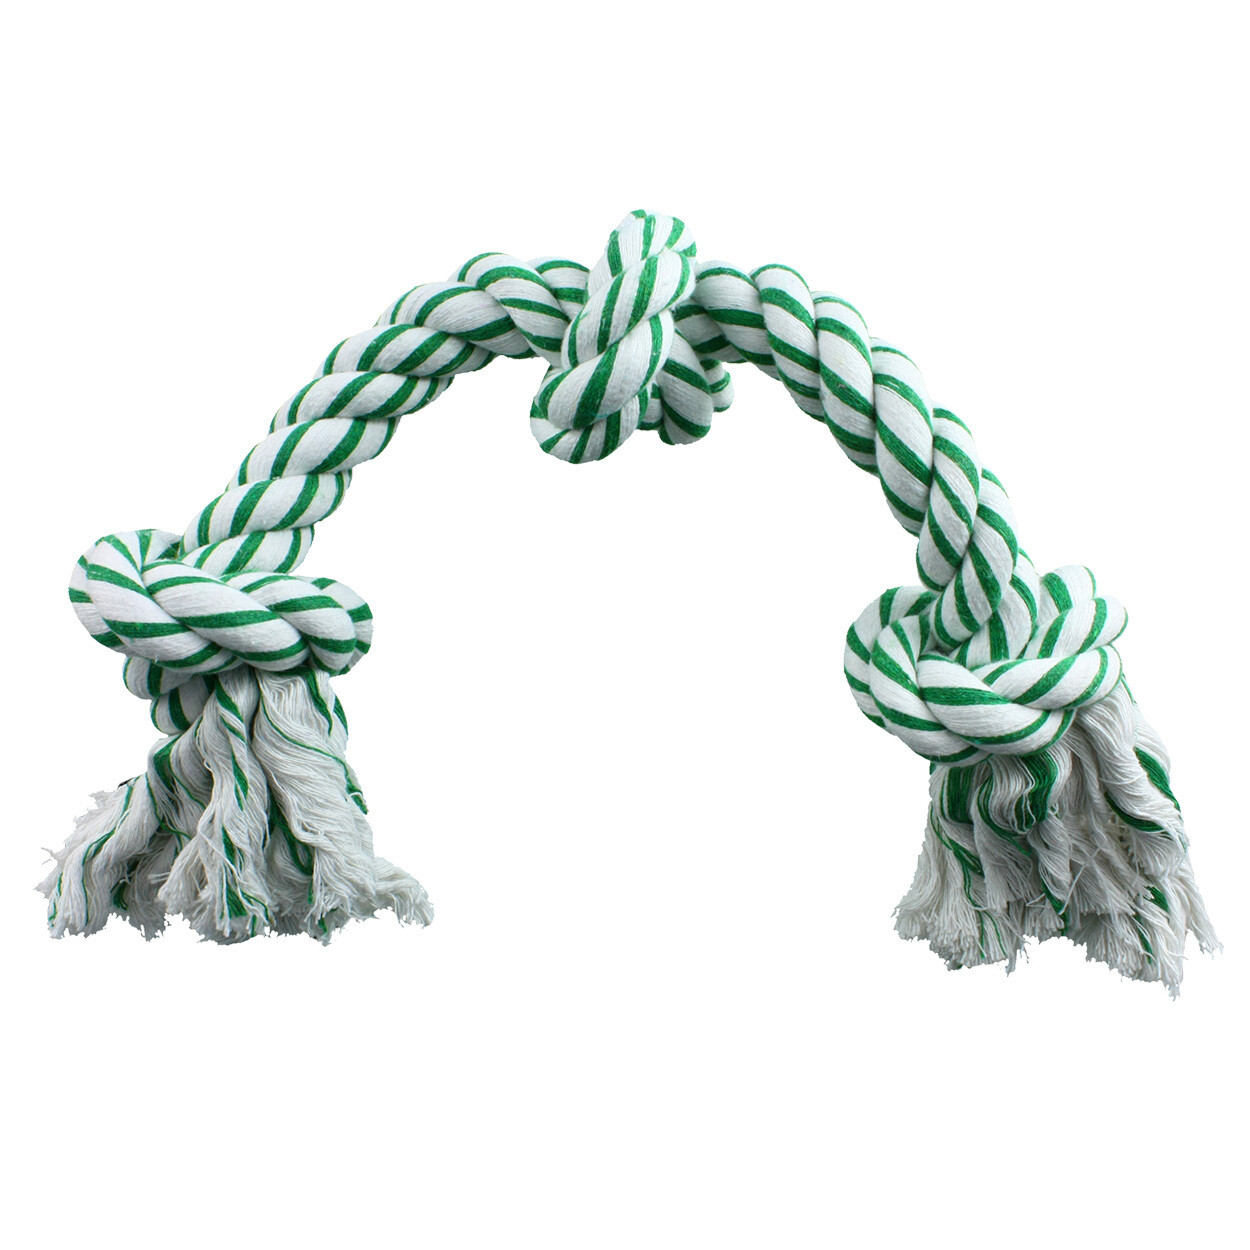 "Animal Treasures 20"" Dental Rope"